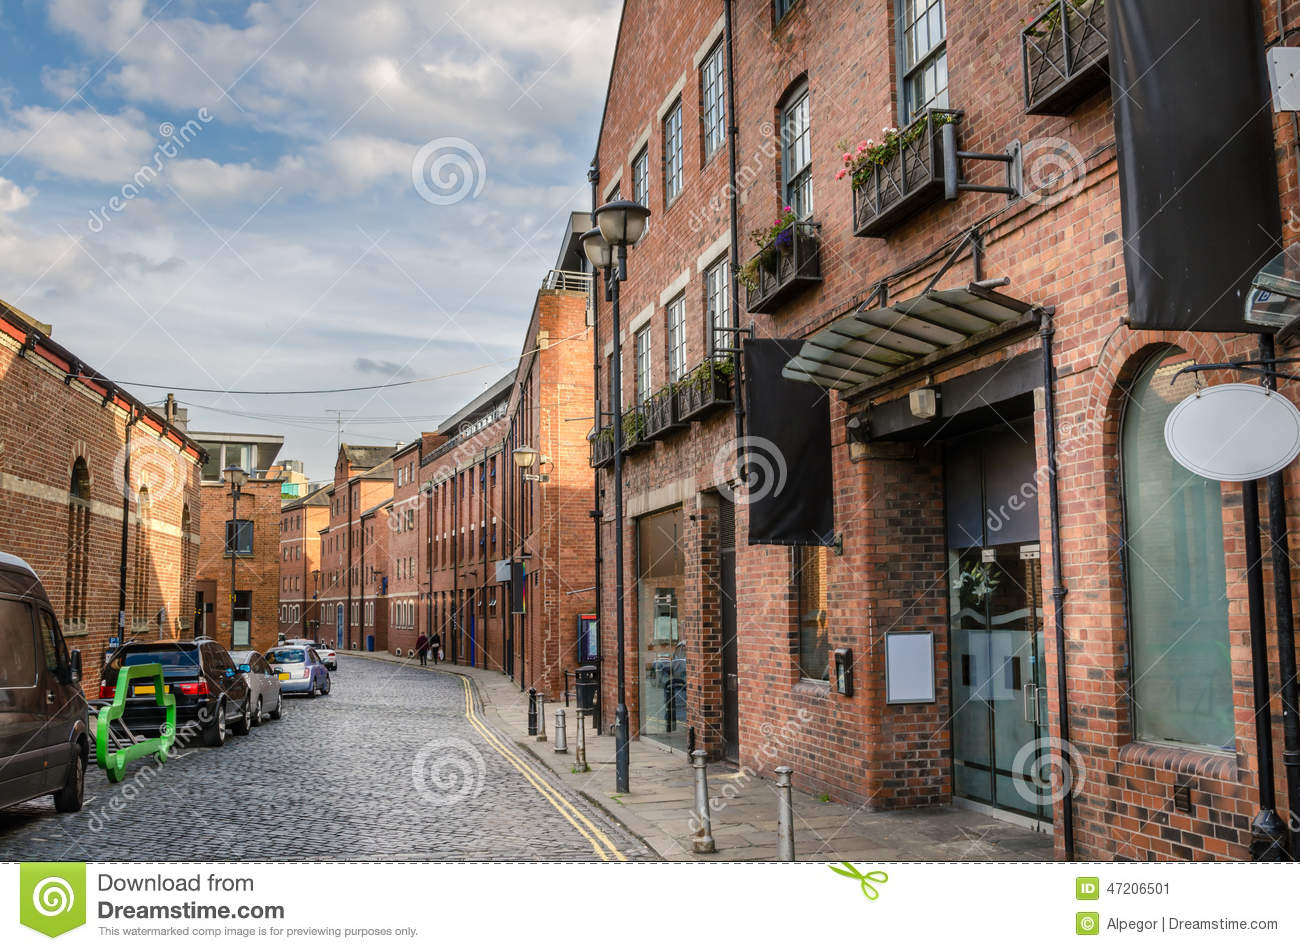 Cobbled Street Lined with Brick Buildings